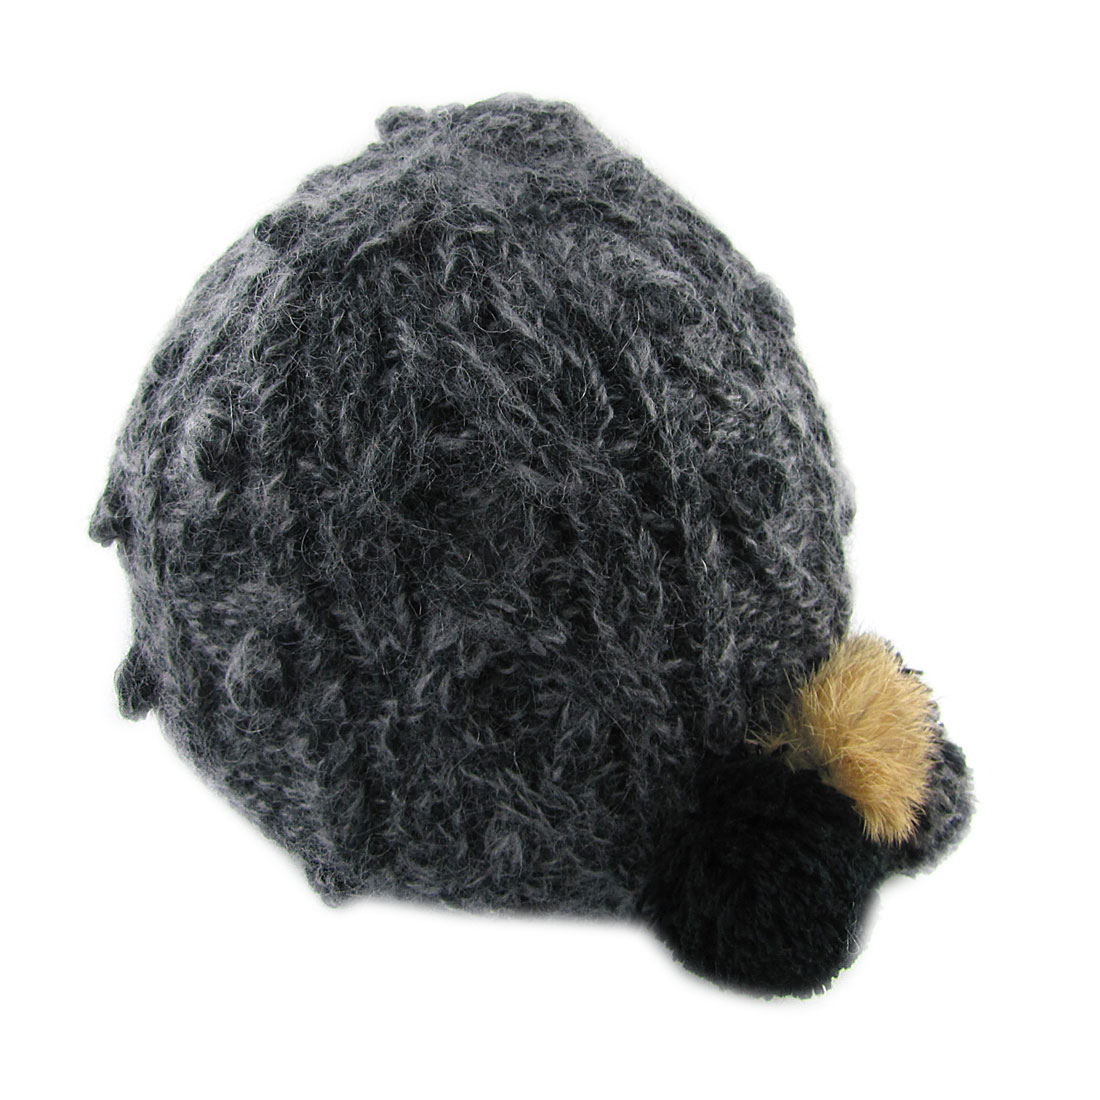 Black Gray Assorted Color Knited Beanie Hat for Ladies